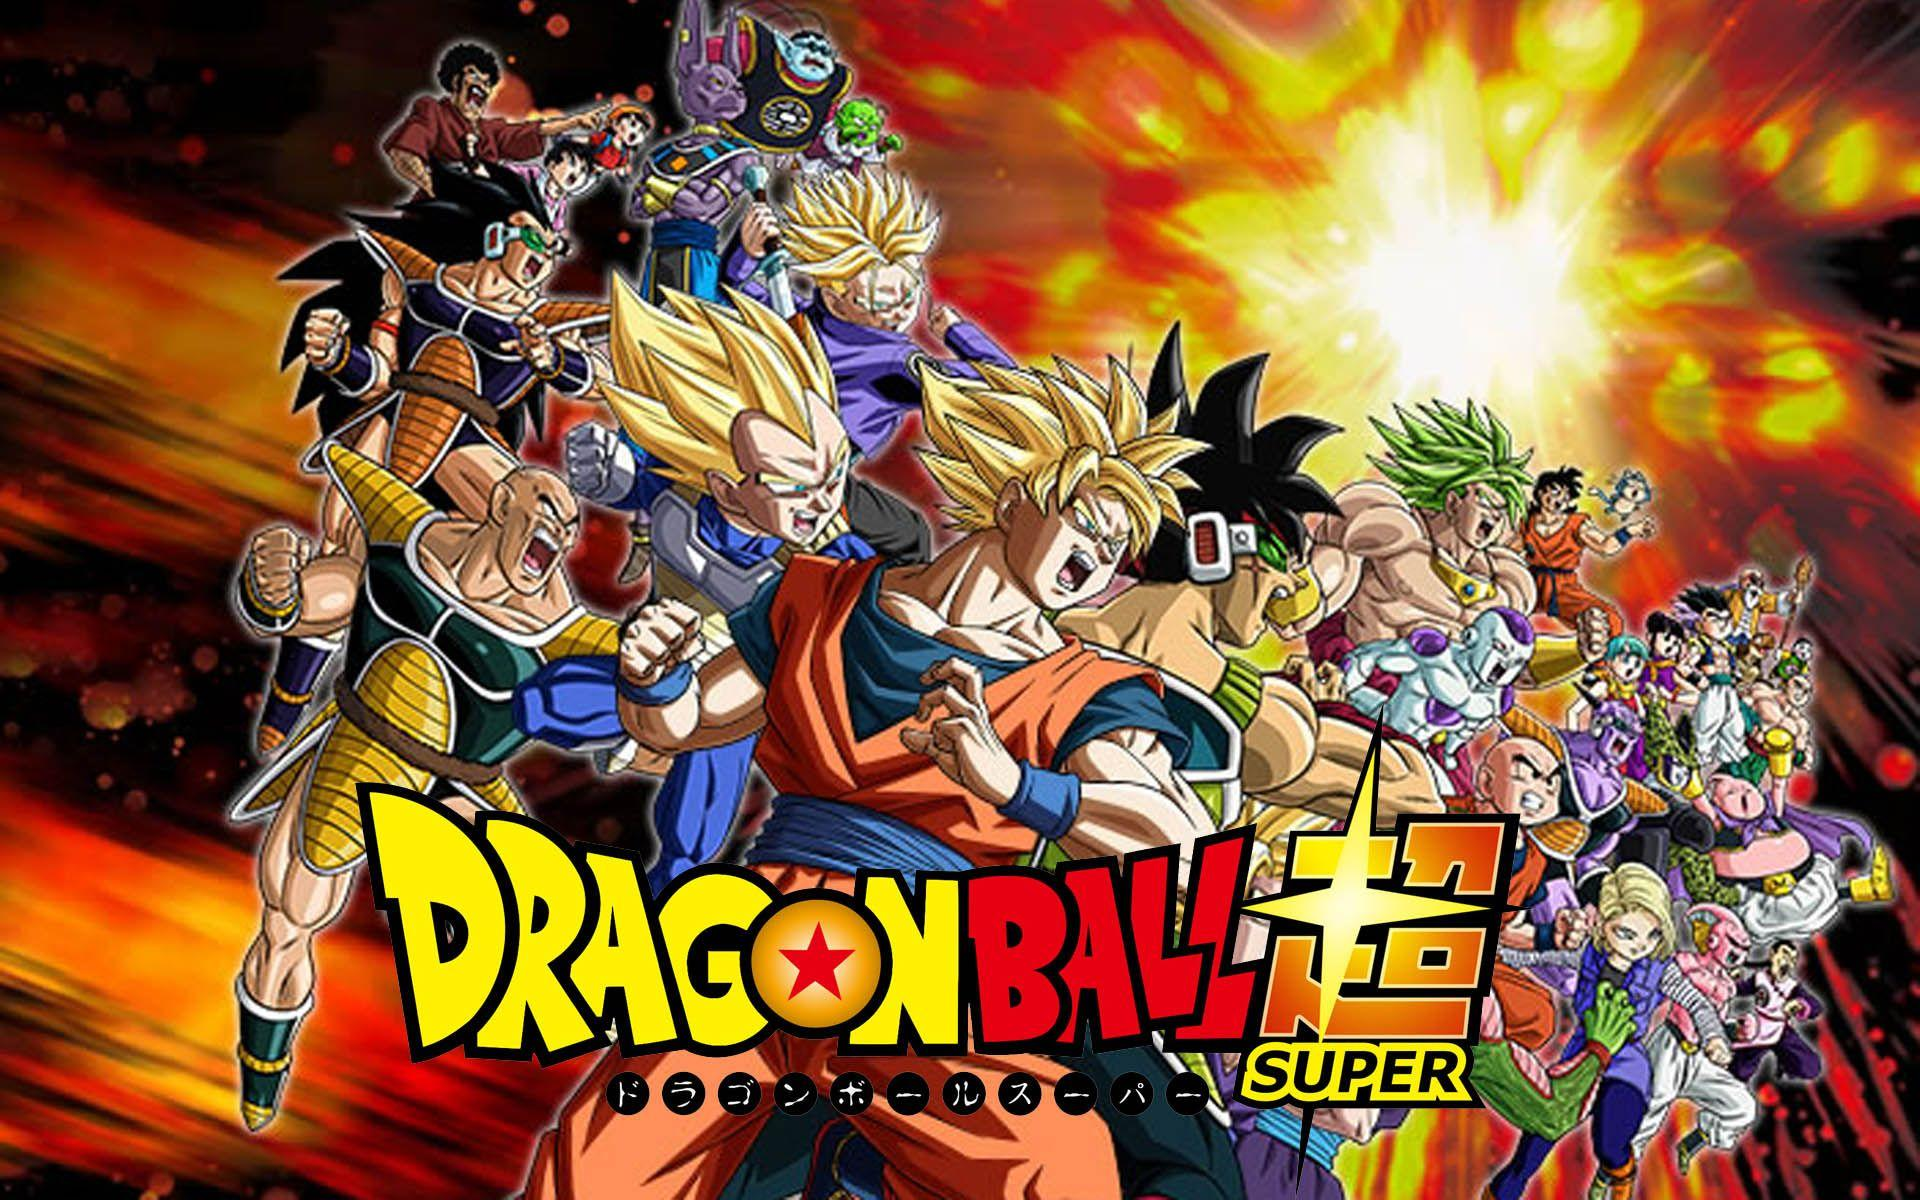 25 Super Dragon Ball Heroes Wallpapers On Wallpapersafari